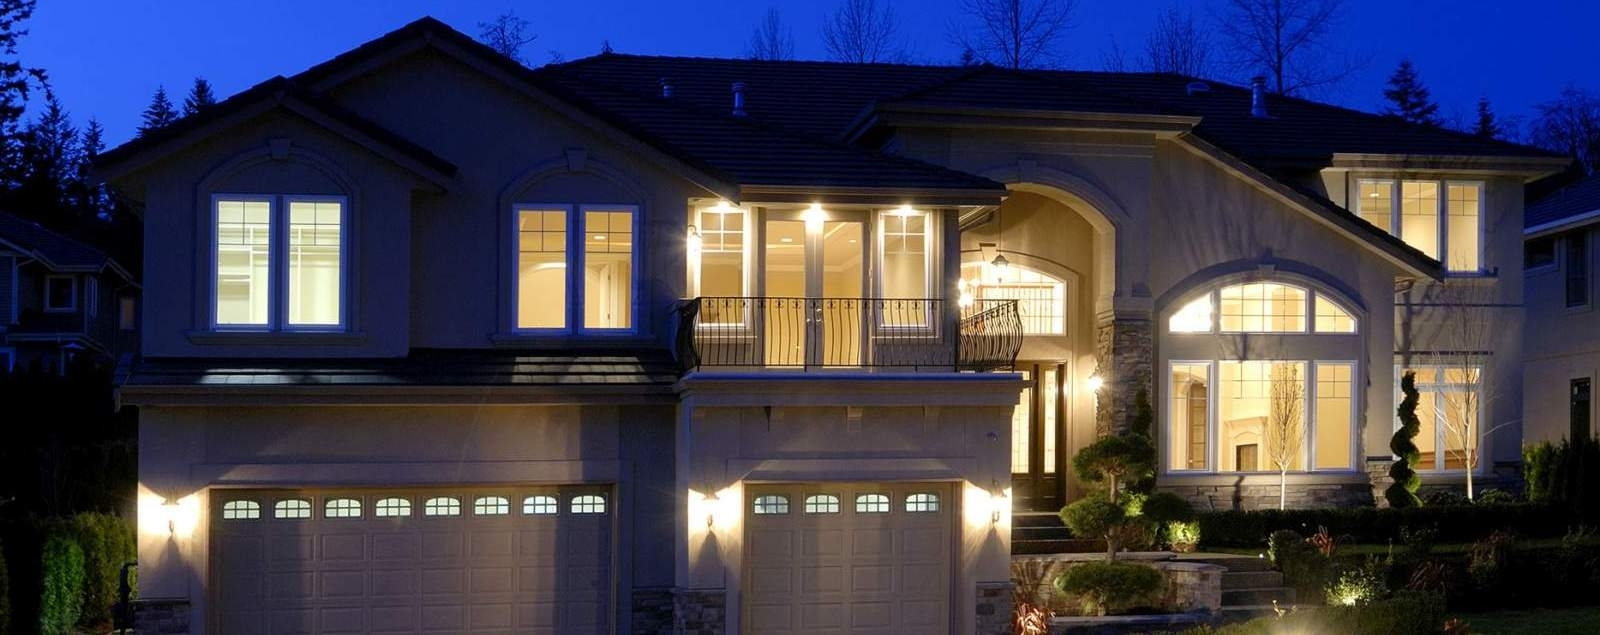 Trendy Outdoor Light Fixtures – Home Exterior Pendants, Flush & Porch Lighting With Regard To Outdoor House Lanterns (Gallery 11 of 20)